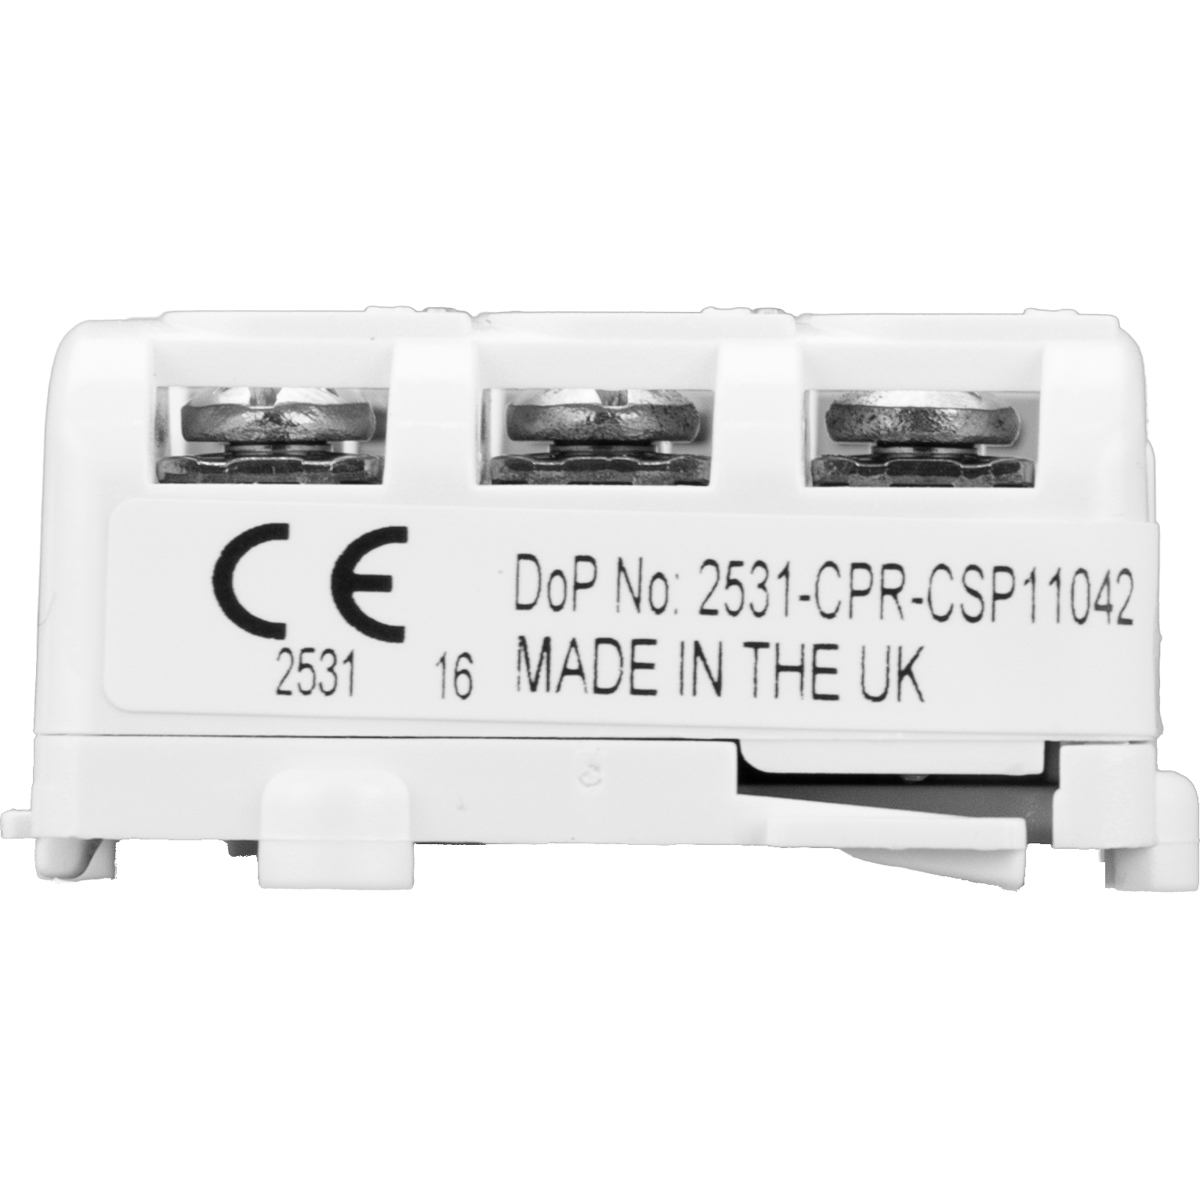 XP95 mini switch monitor - DIN-rail